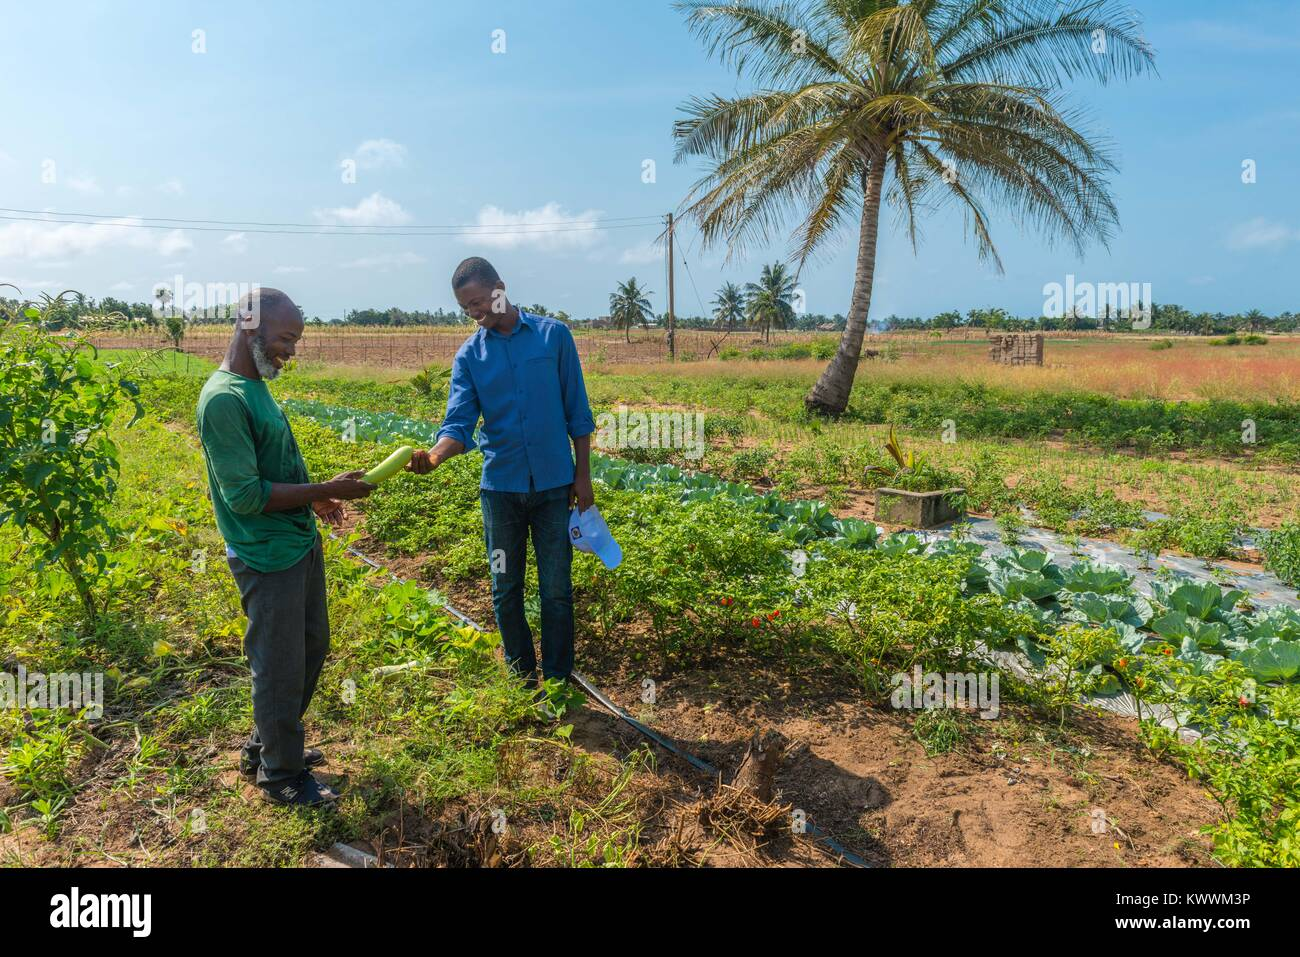 Farming in Ghana, irrgated fields of farmer Gideon Agbodzi (l) showing Ebener Korateng of GIZ Ghana (r) some fruit, - Stock Image